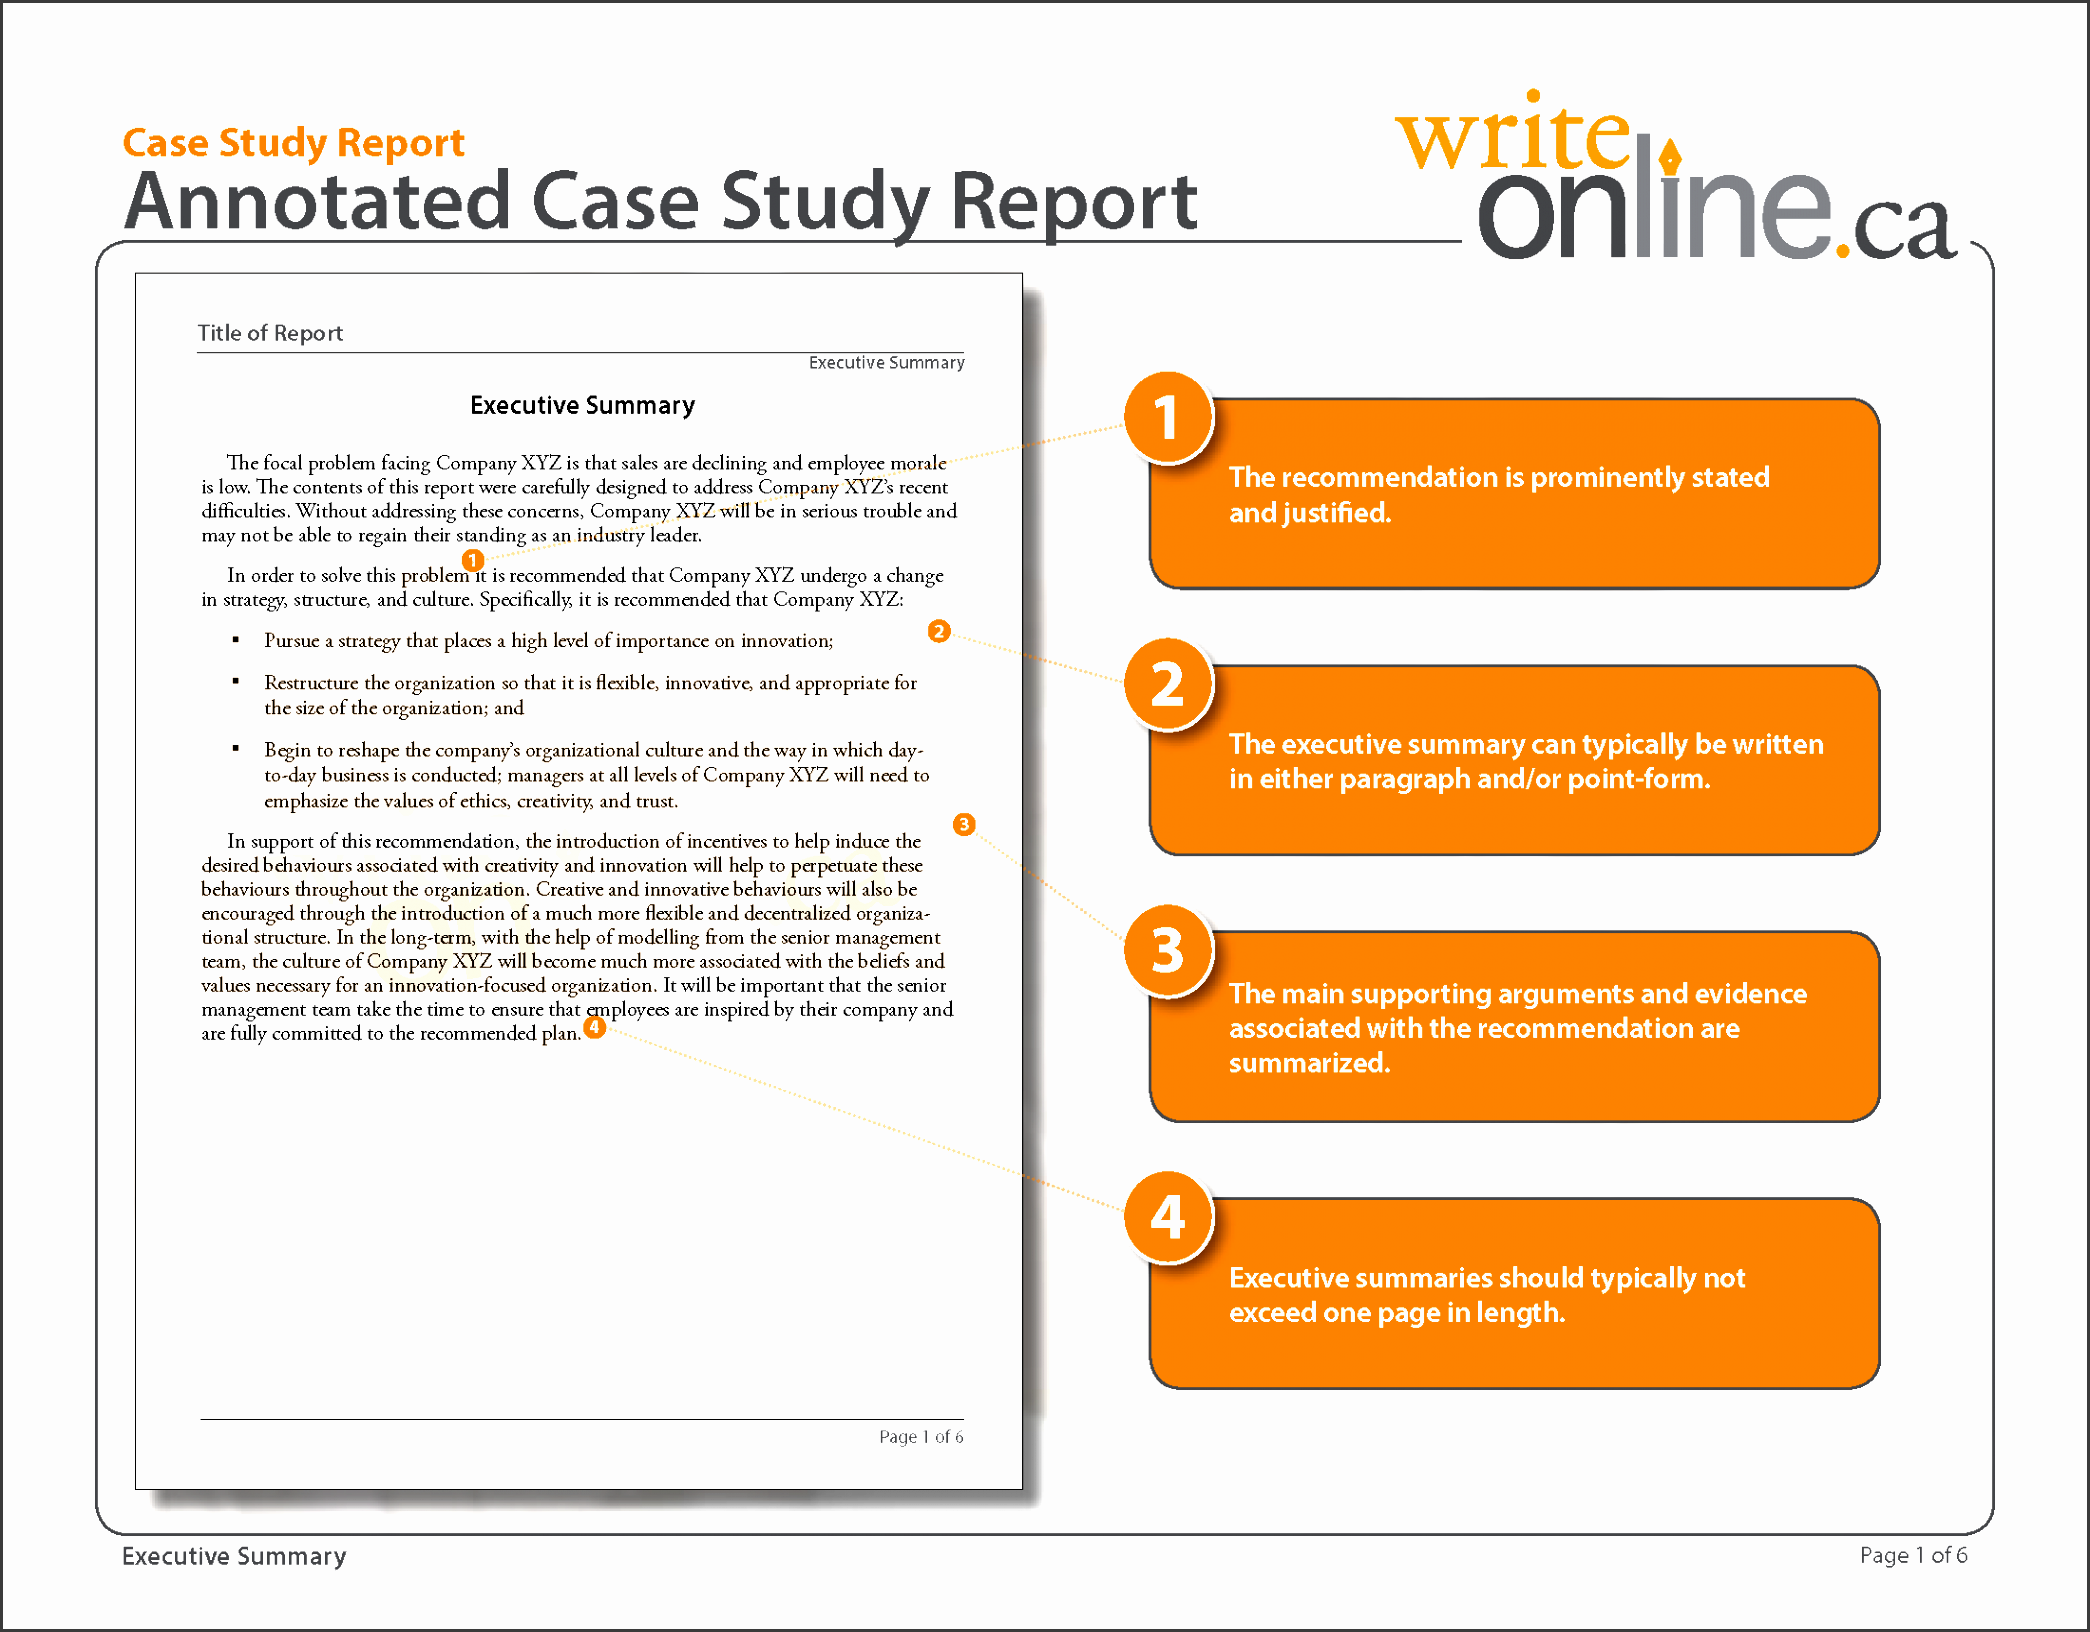 data analysis report template and write online case study report writing guide parts of a case